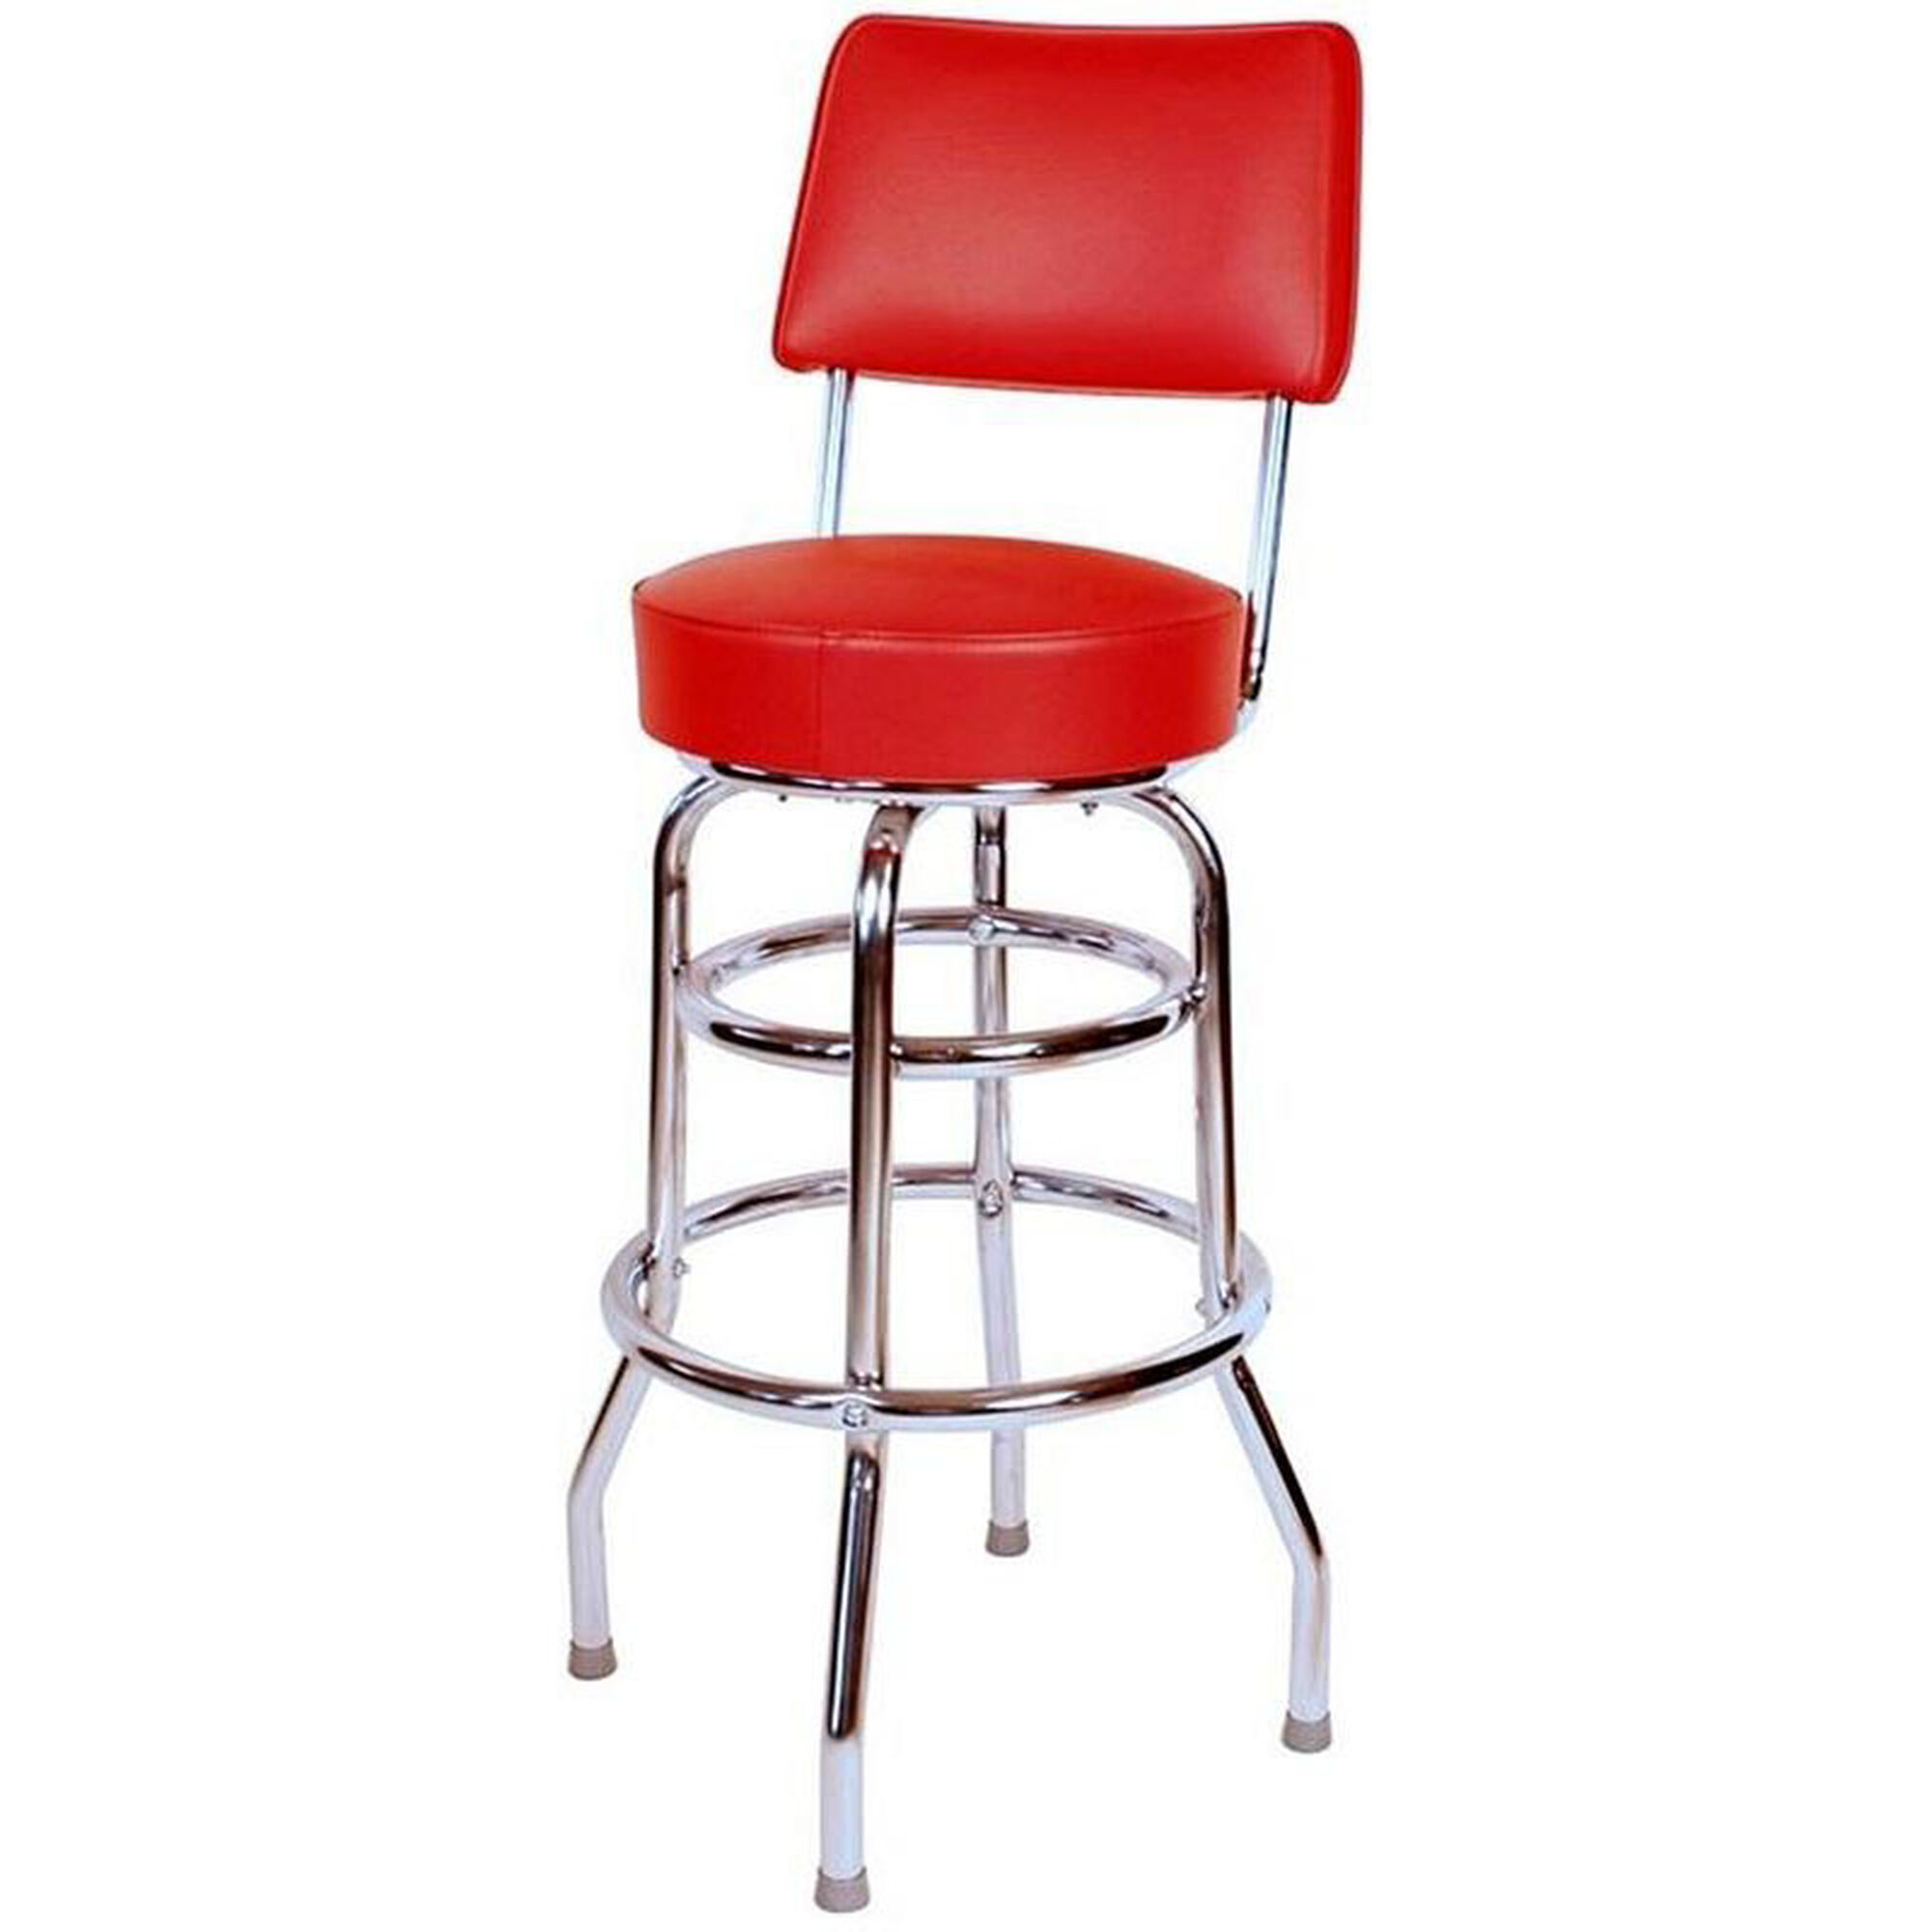 Pleasant Retro Style Double Ring Chrome Frame 30 Swivel Bar Stool With Backrest And Padded Seat Red Vinyl Cjindustries Chair Design For Home Cjindustriesco